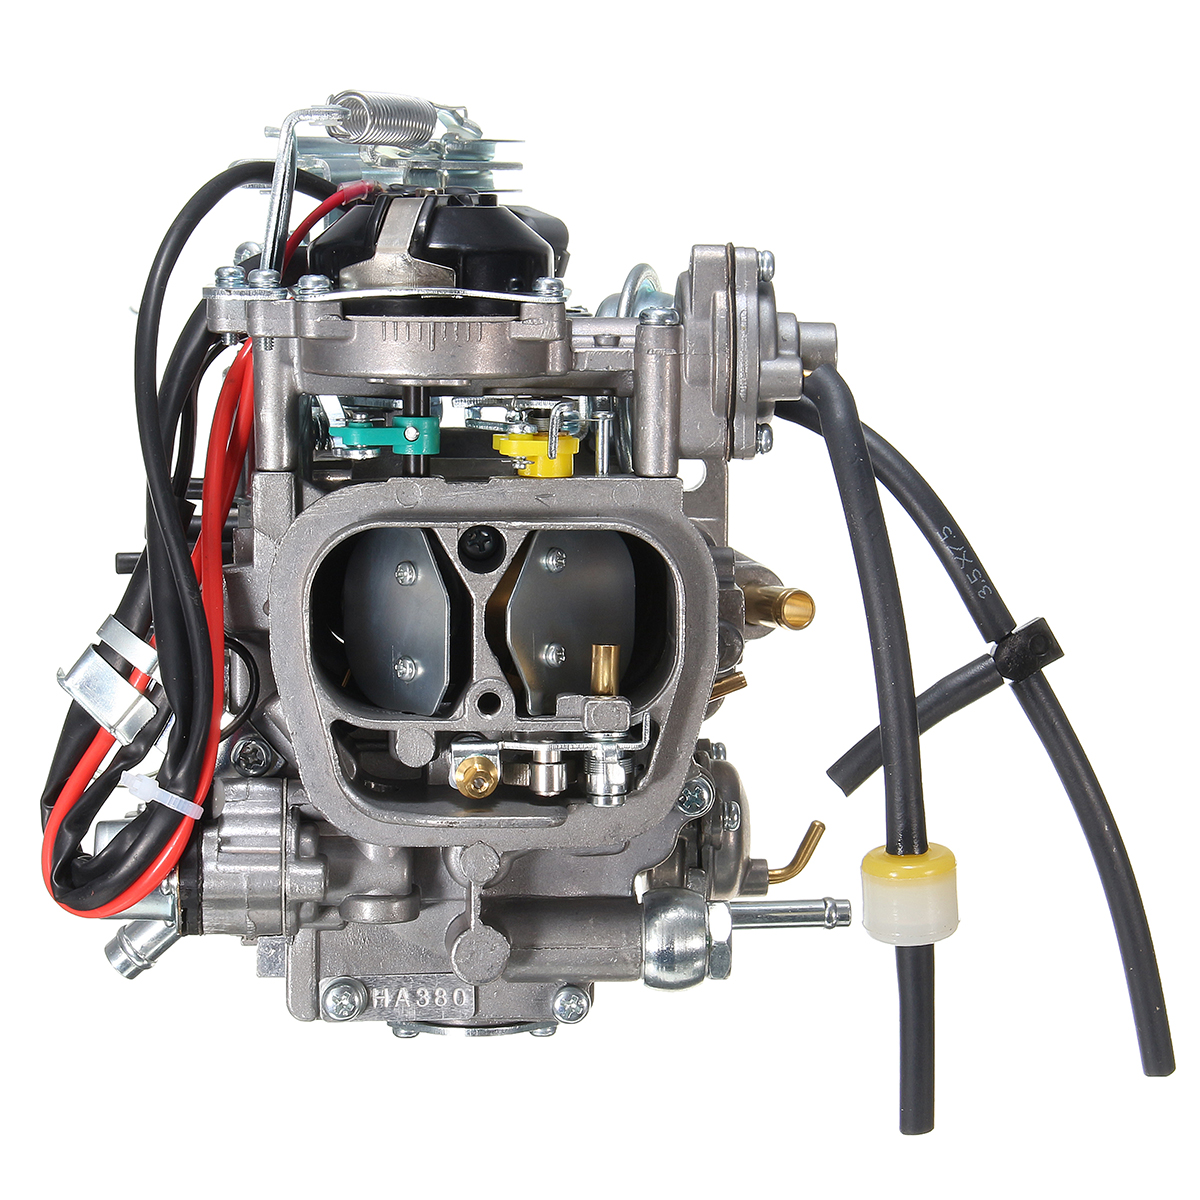 New Carb Carburetor Trucks For Toyota 22R Celica Hilux Pickup 4 Runner Style Engines #21100-35520 new high quality carbie carb carby carburetor for toyota 4 runner hilux 22r engine part number 21100 35530 21100 35520